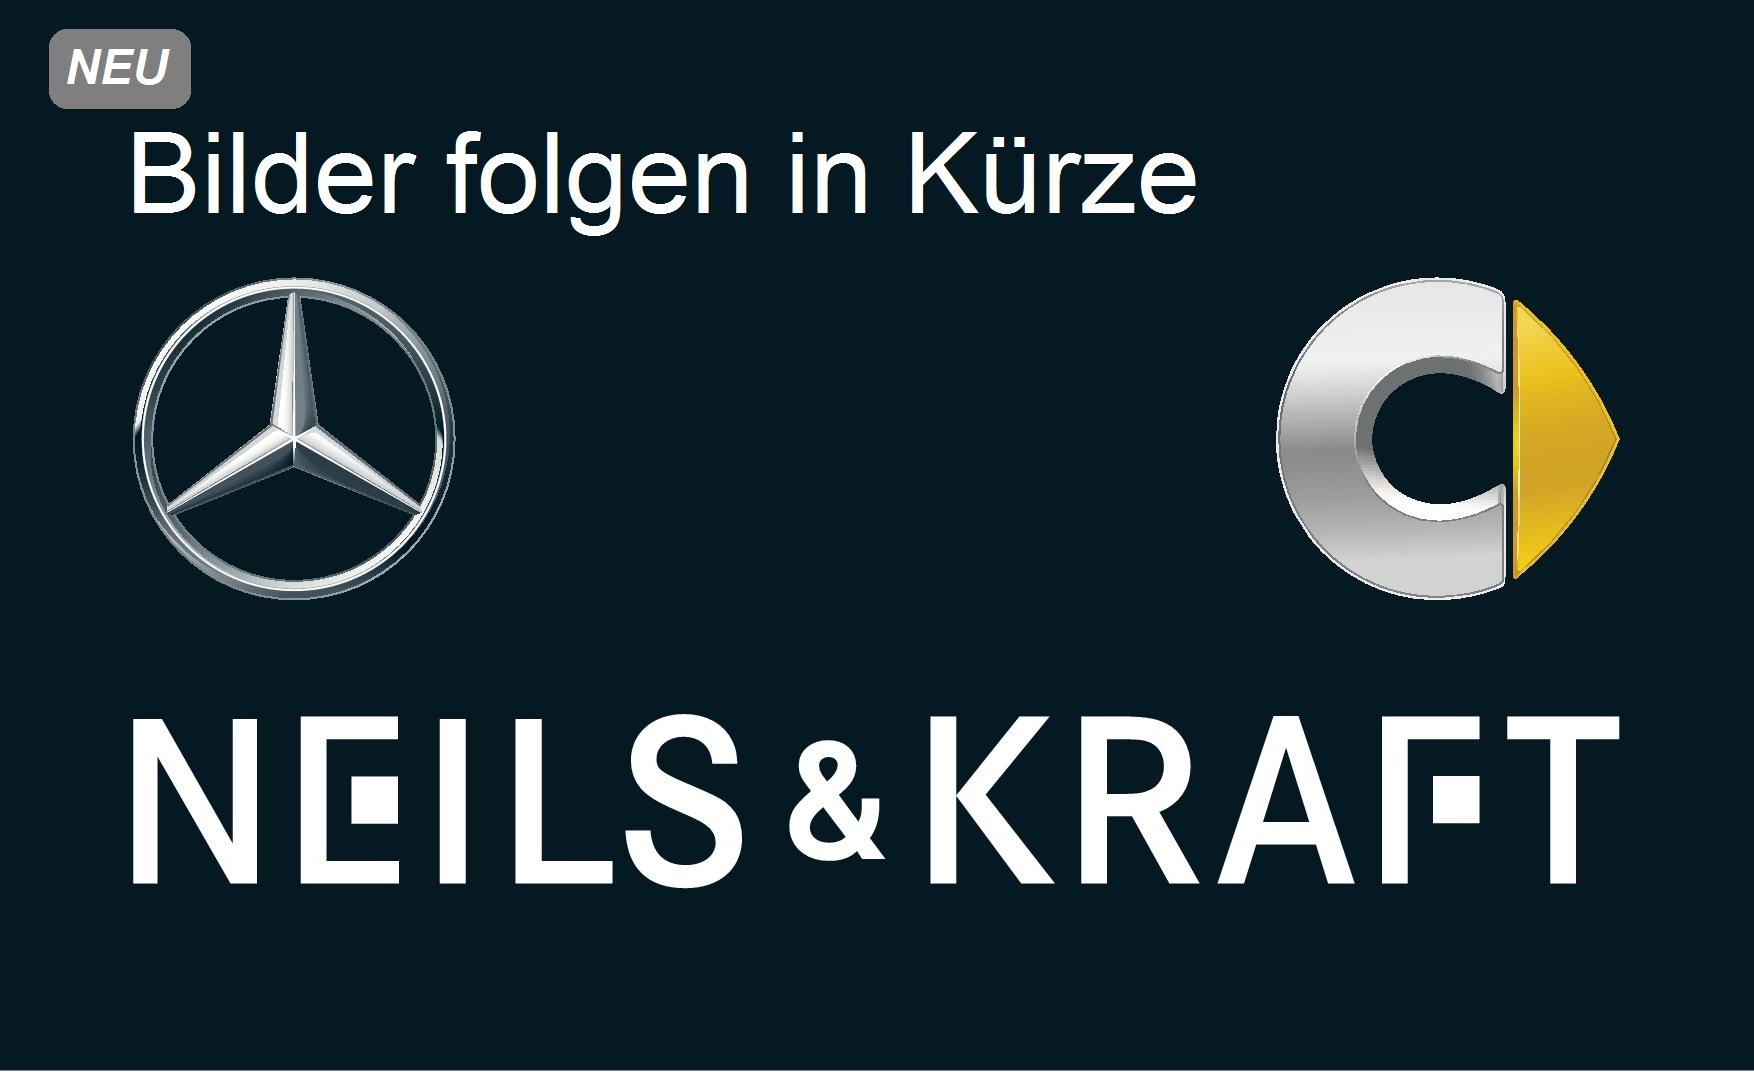 Mercedes-Benz GLK 220d 4MATIC INTELLIGENT LIGHT+PARK PIL+NAVI+, Jahr 2015, Diesel